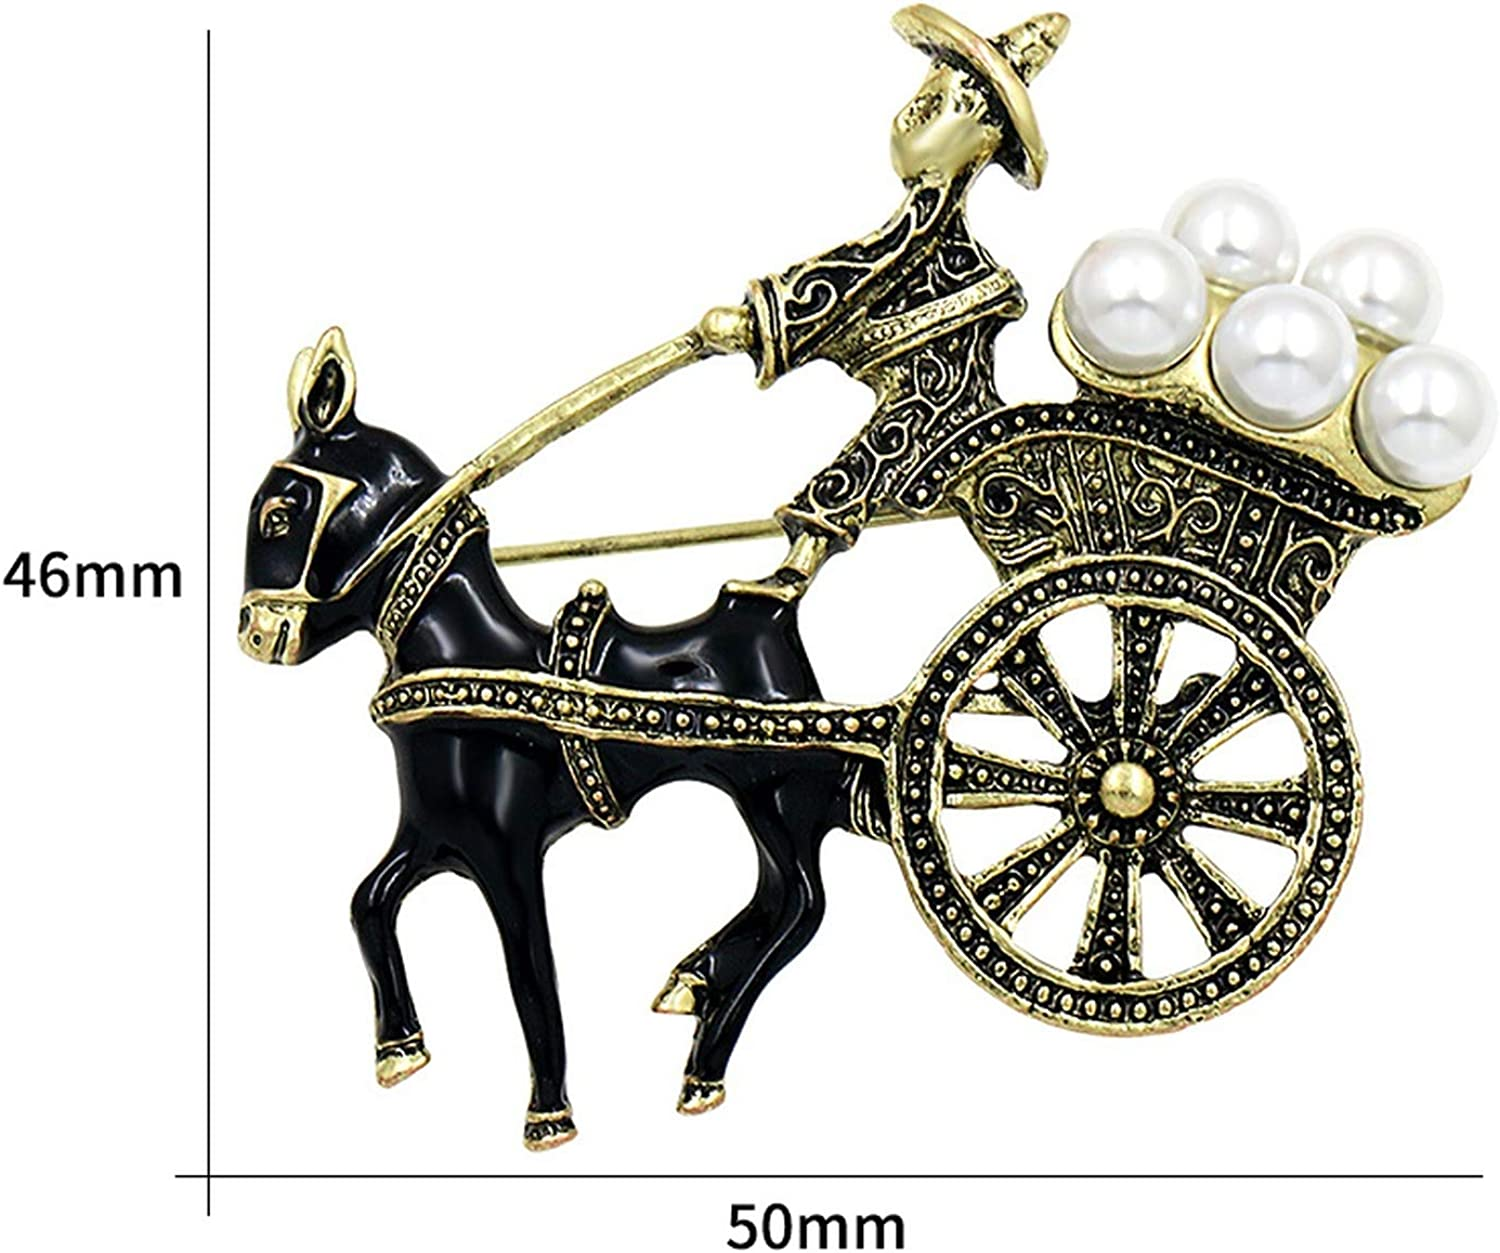 myeuphoria Brooch Pins-Vintage Style Horse Carriage Brooches with Simulated Pearls